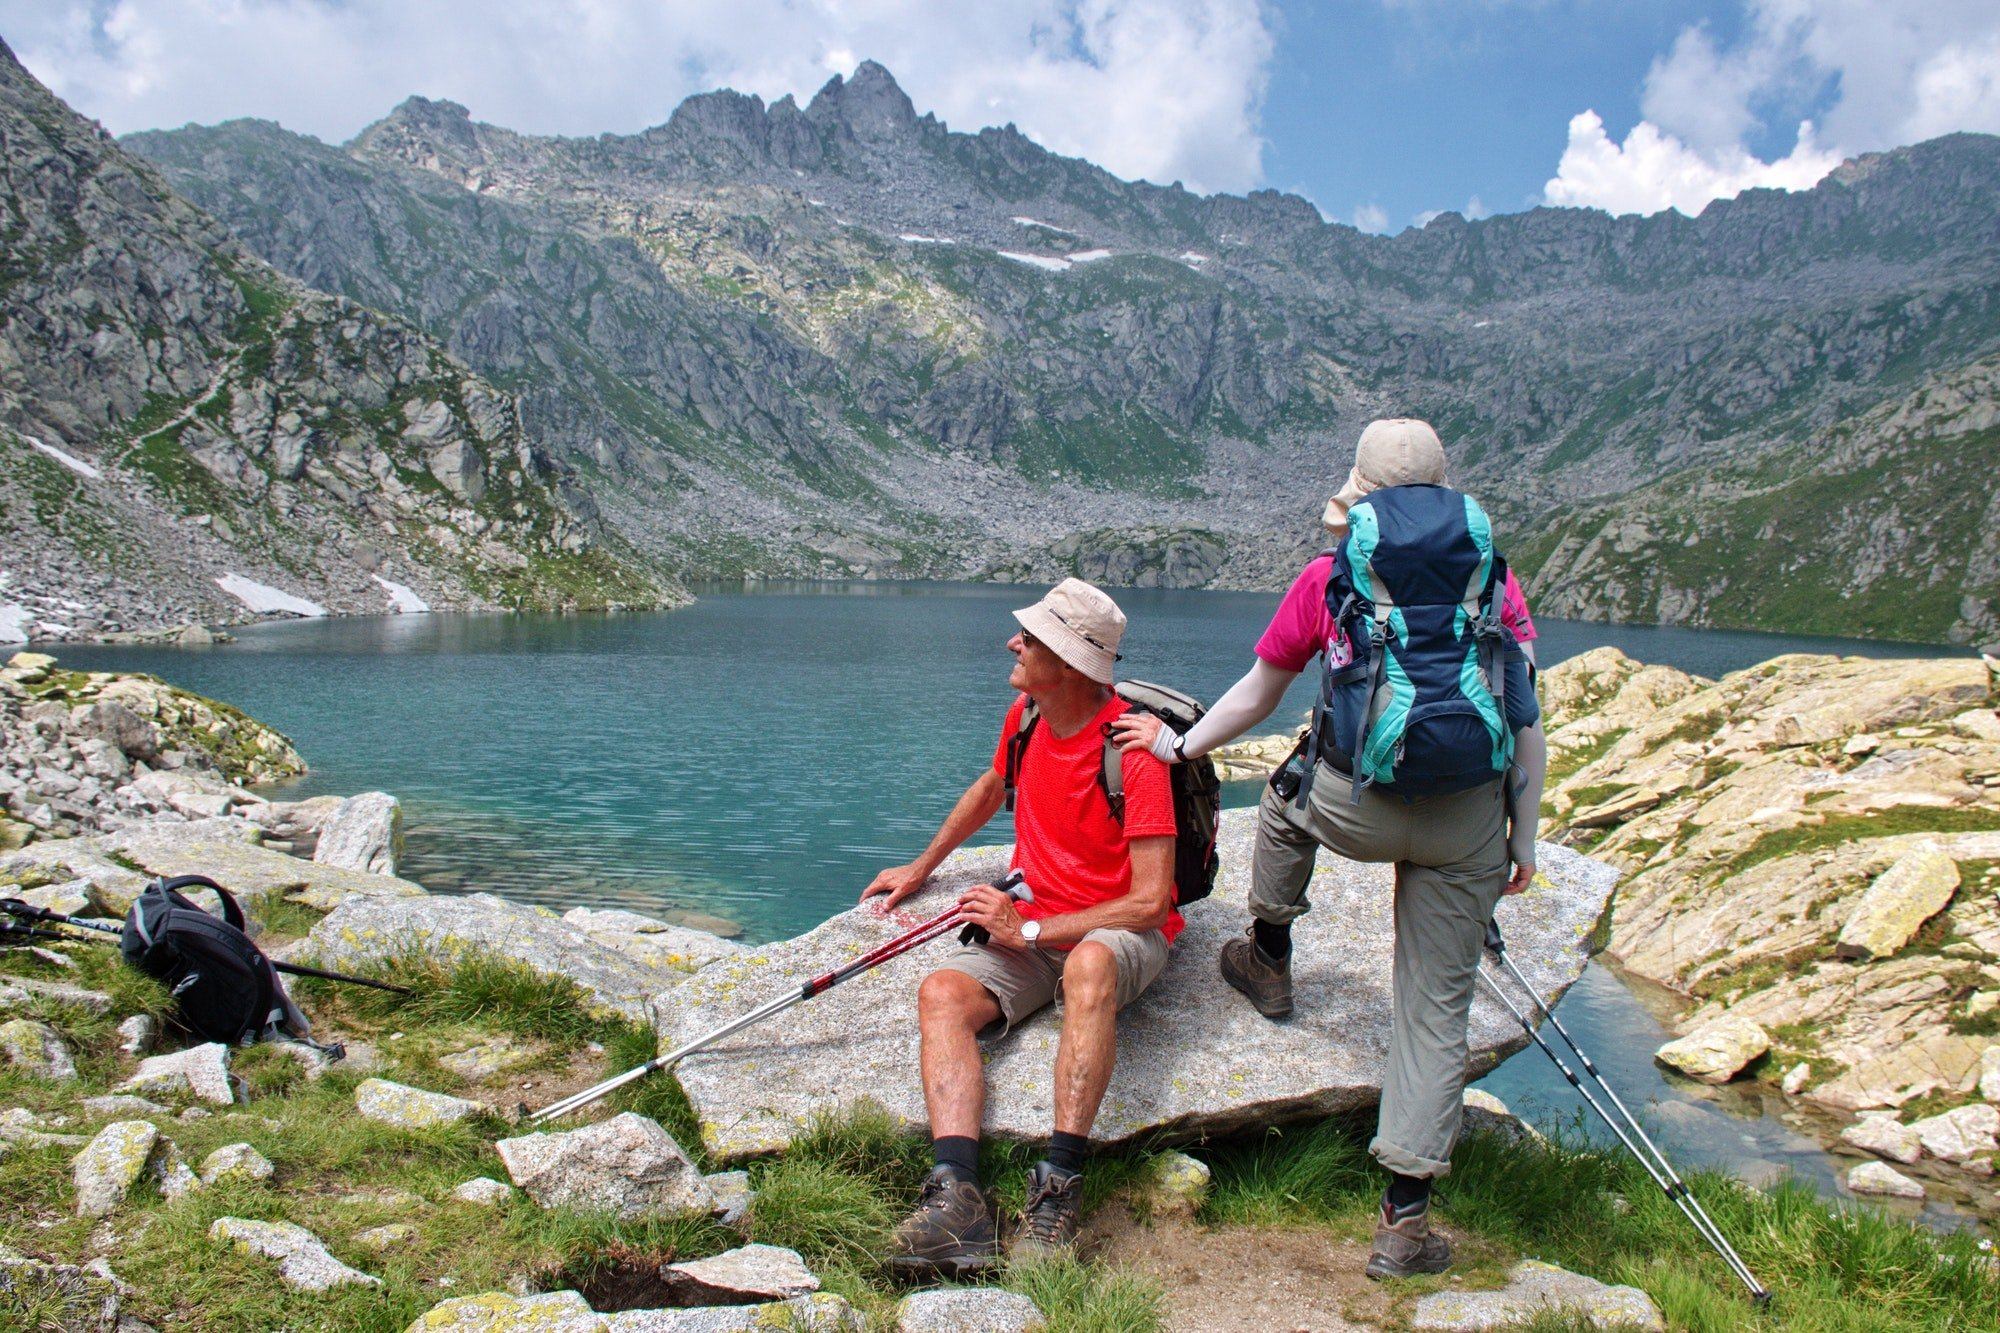 Senior couple looking at the lake in Brenta Dolomites, Italy. Scenic rocky environment